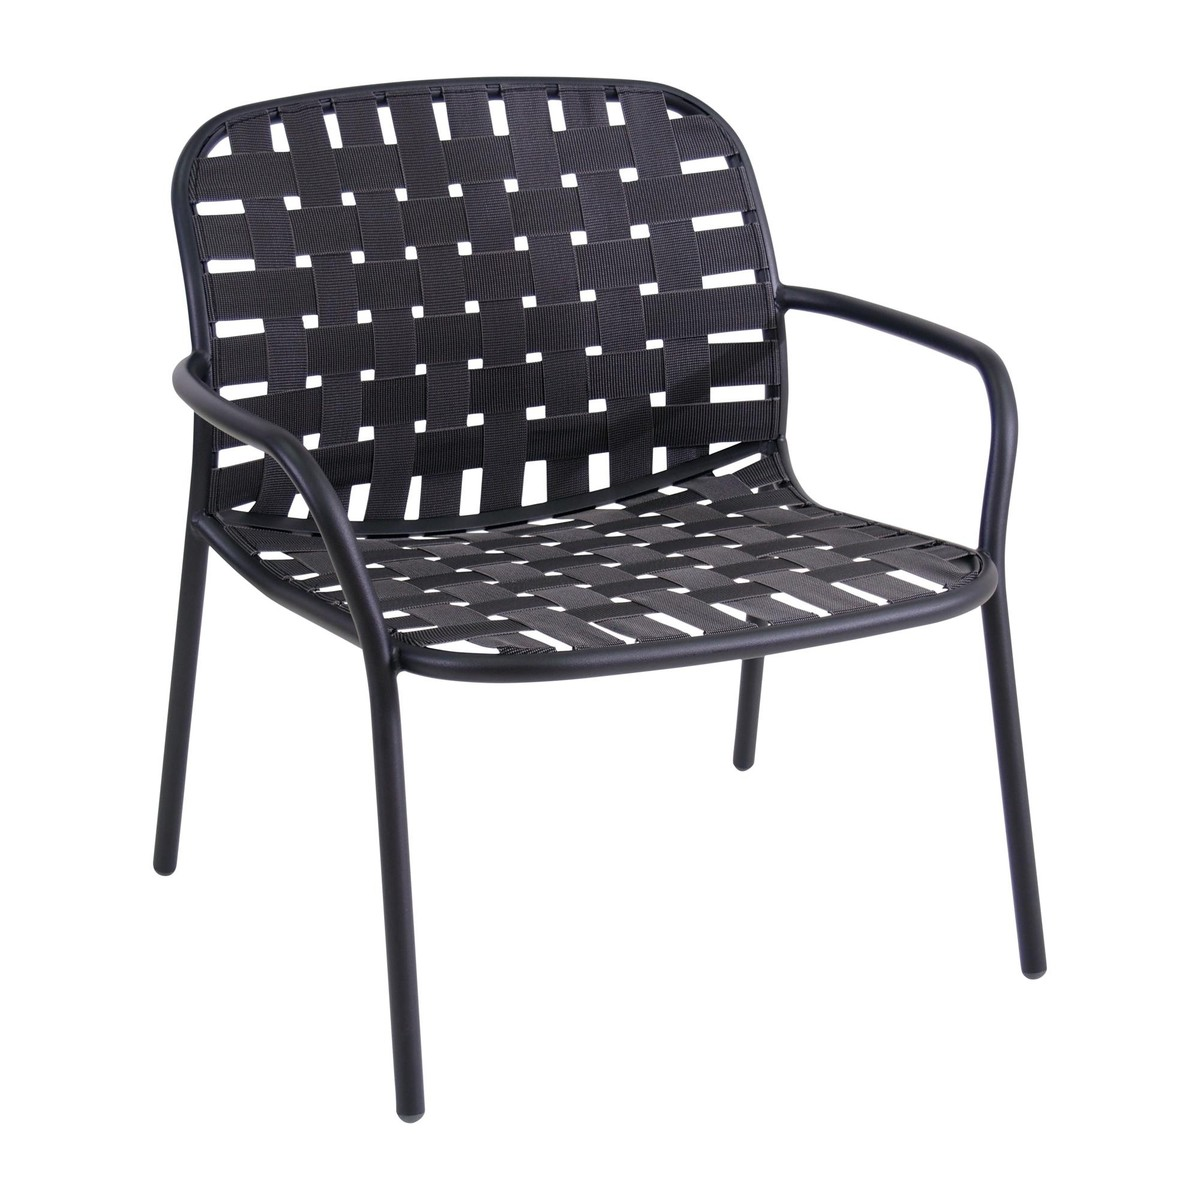 yard garden lounge chair | emu | ambientedirect, Hause deko